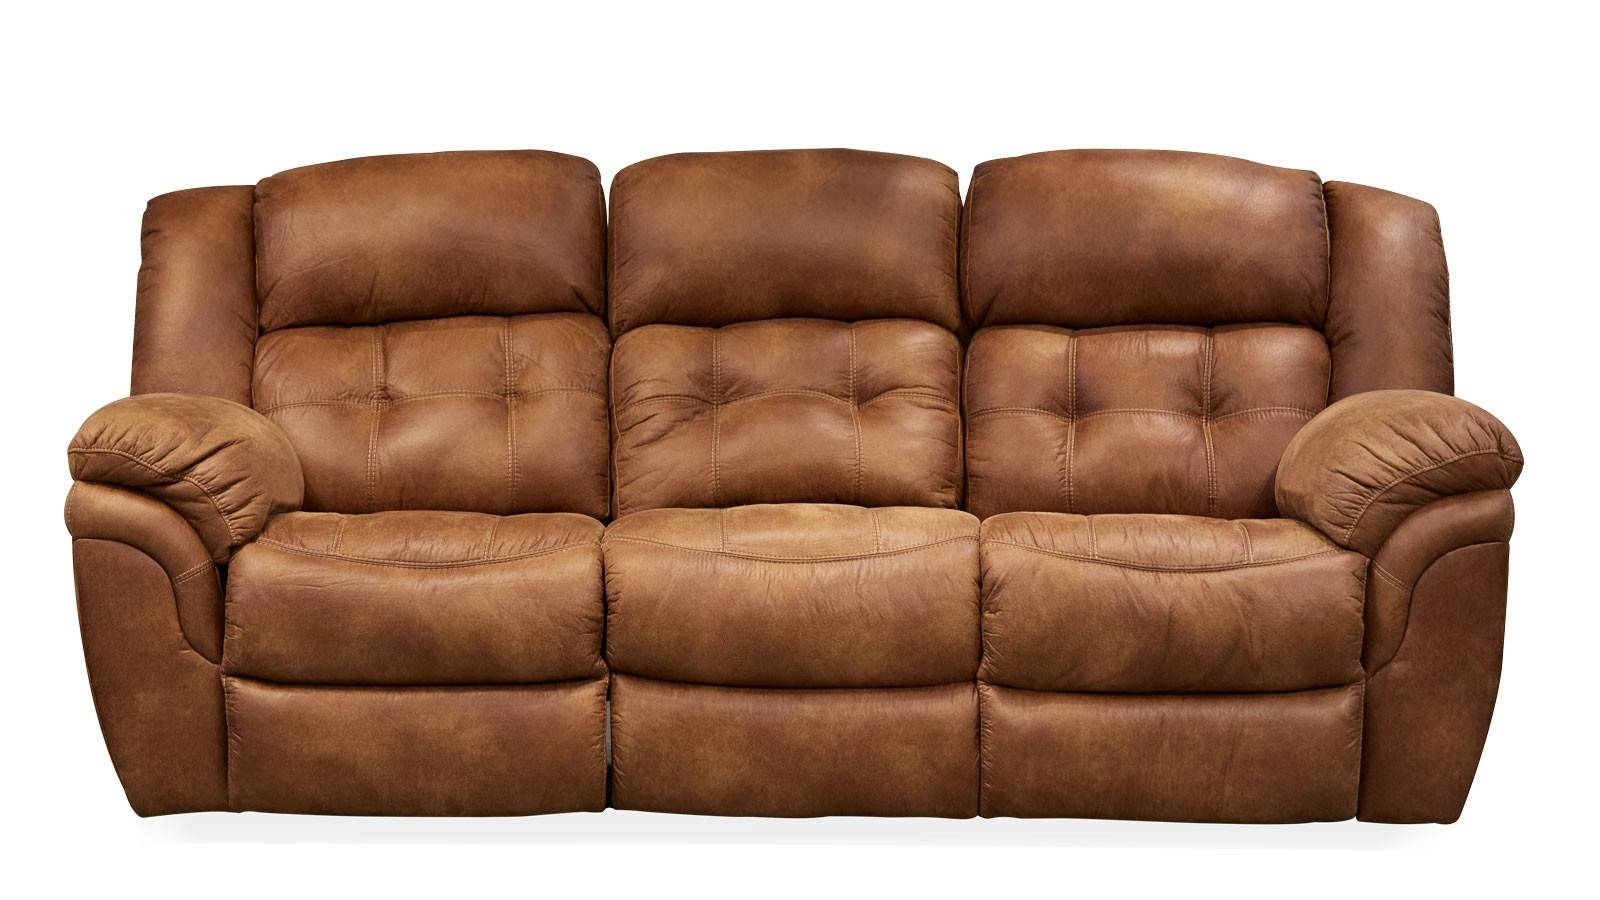 Frontier Almond Reclining Sofa | Gallery Furniture in Recliner Sofa Chairs (Image 15 of 30)